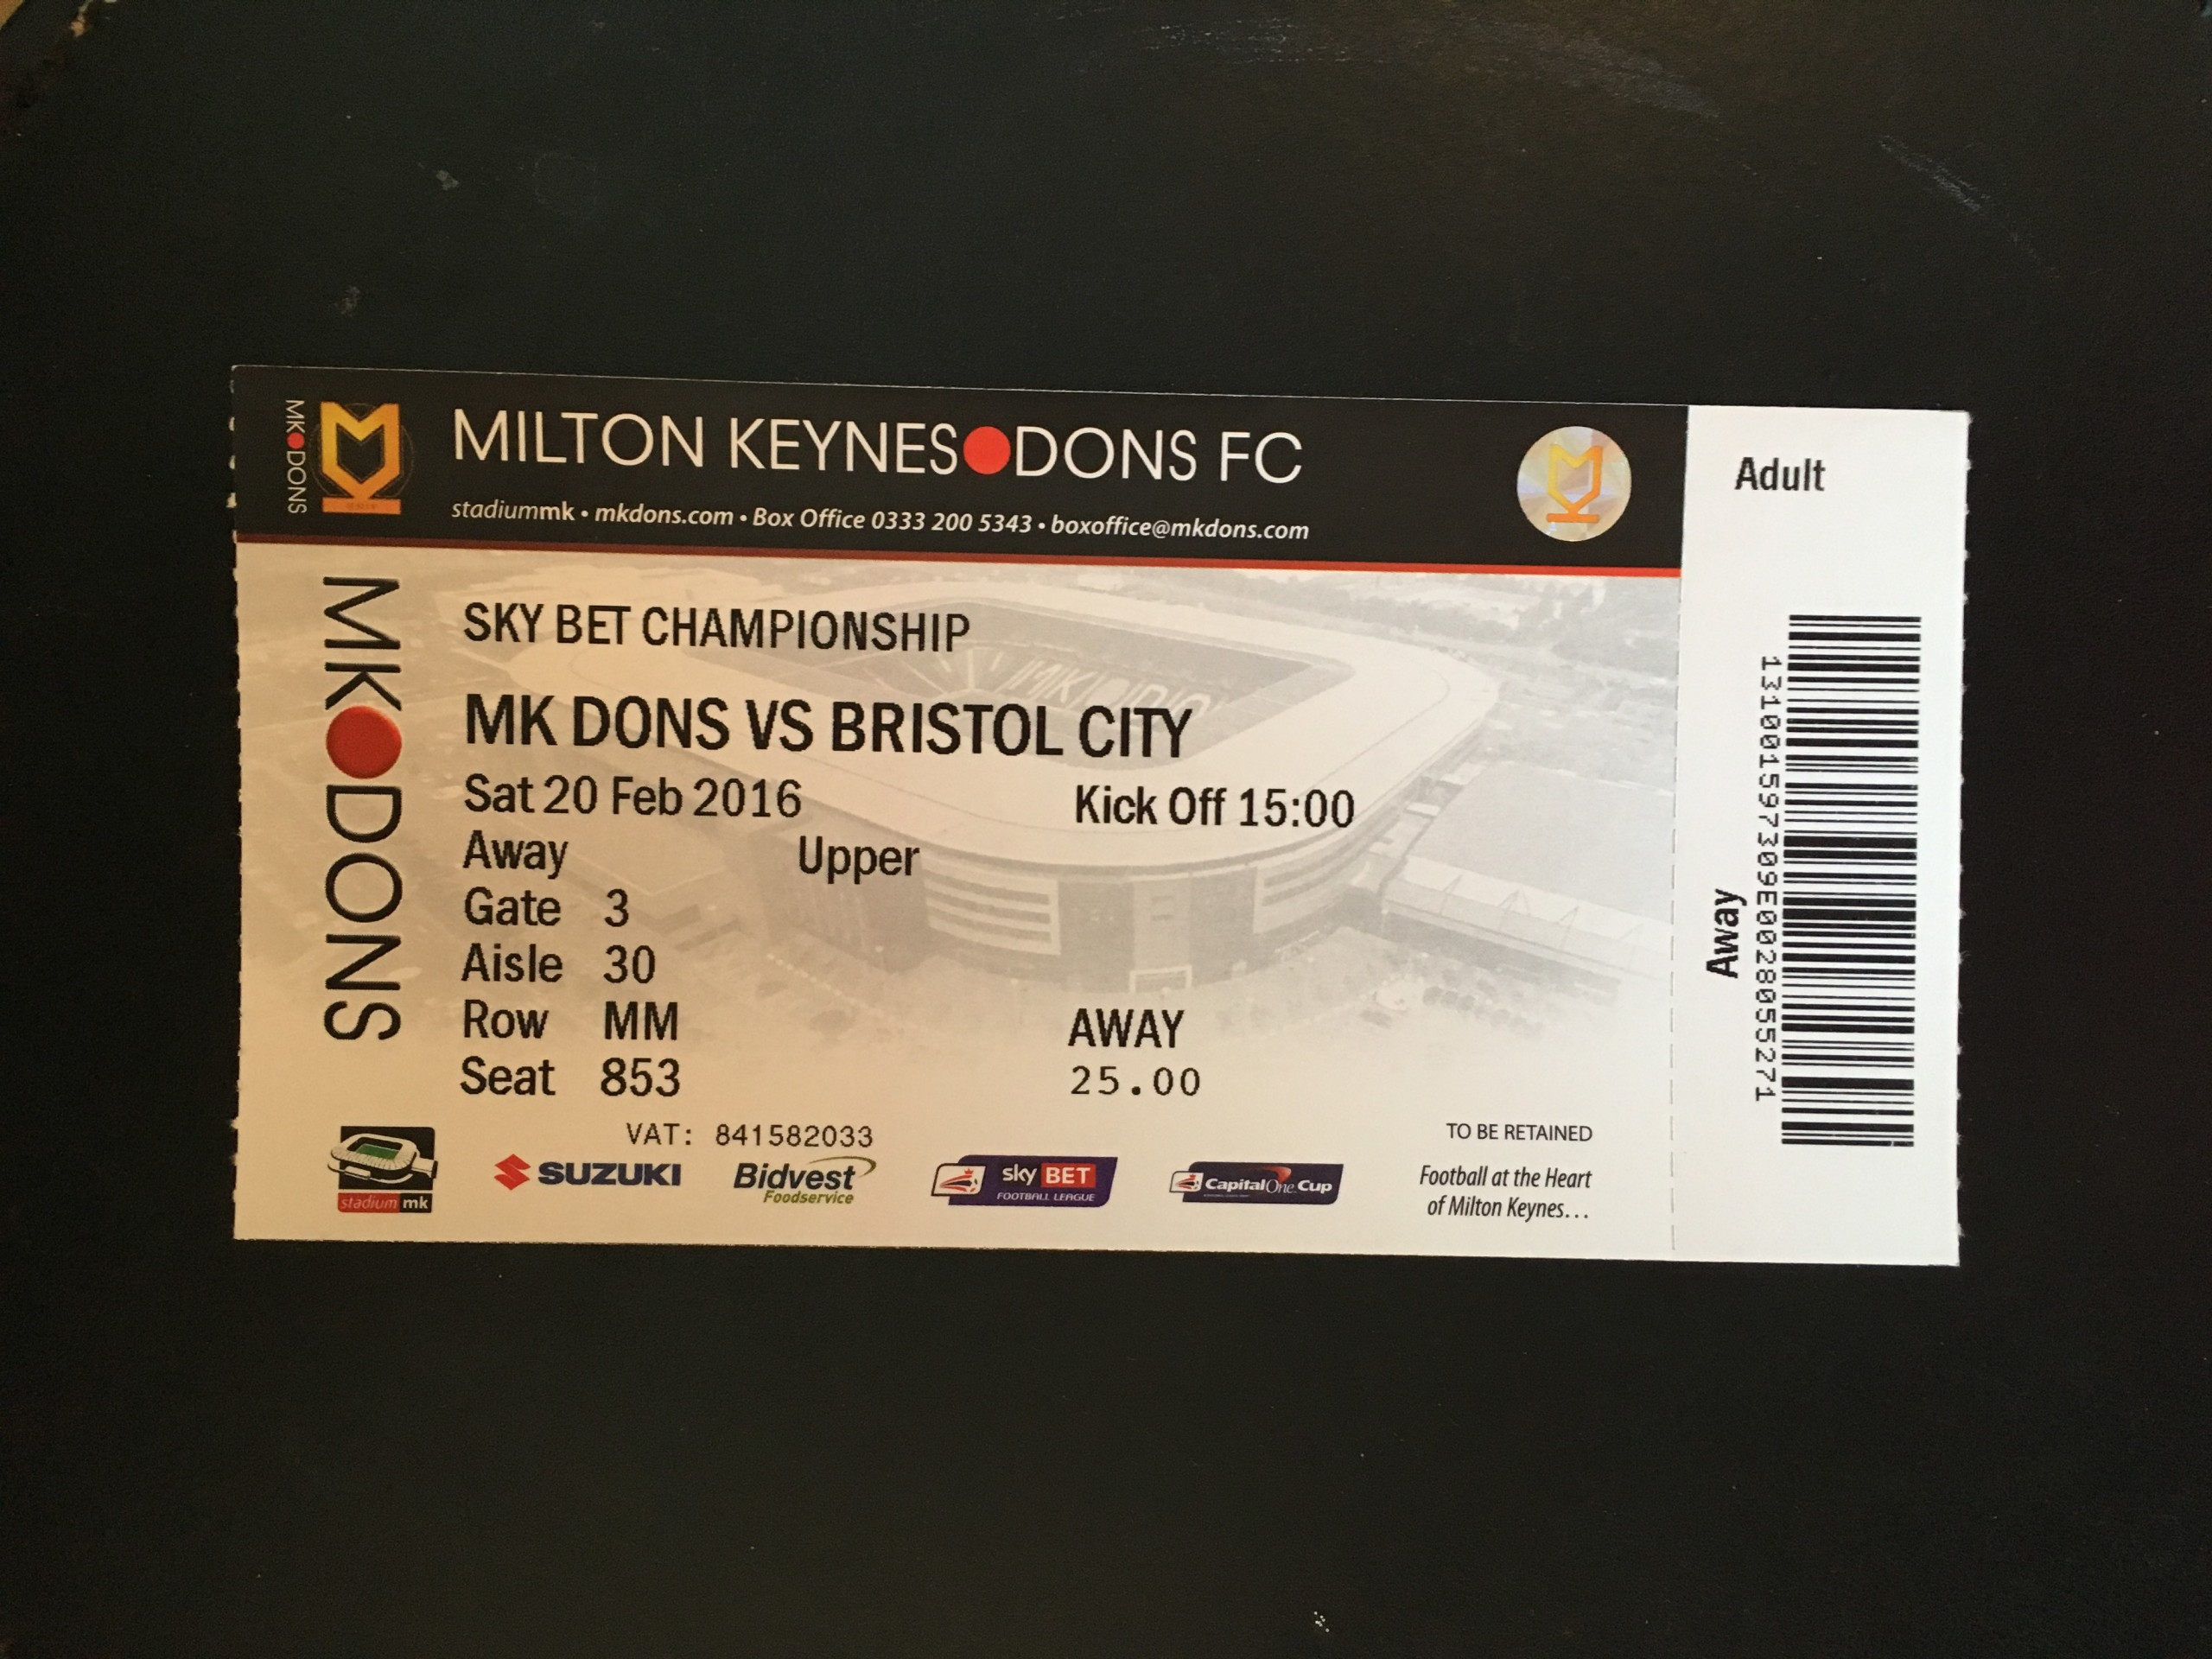 MK Dons v Bristol City 20-02-2016 Ticket